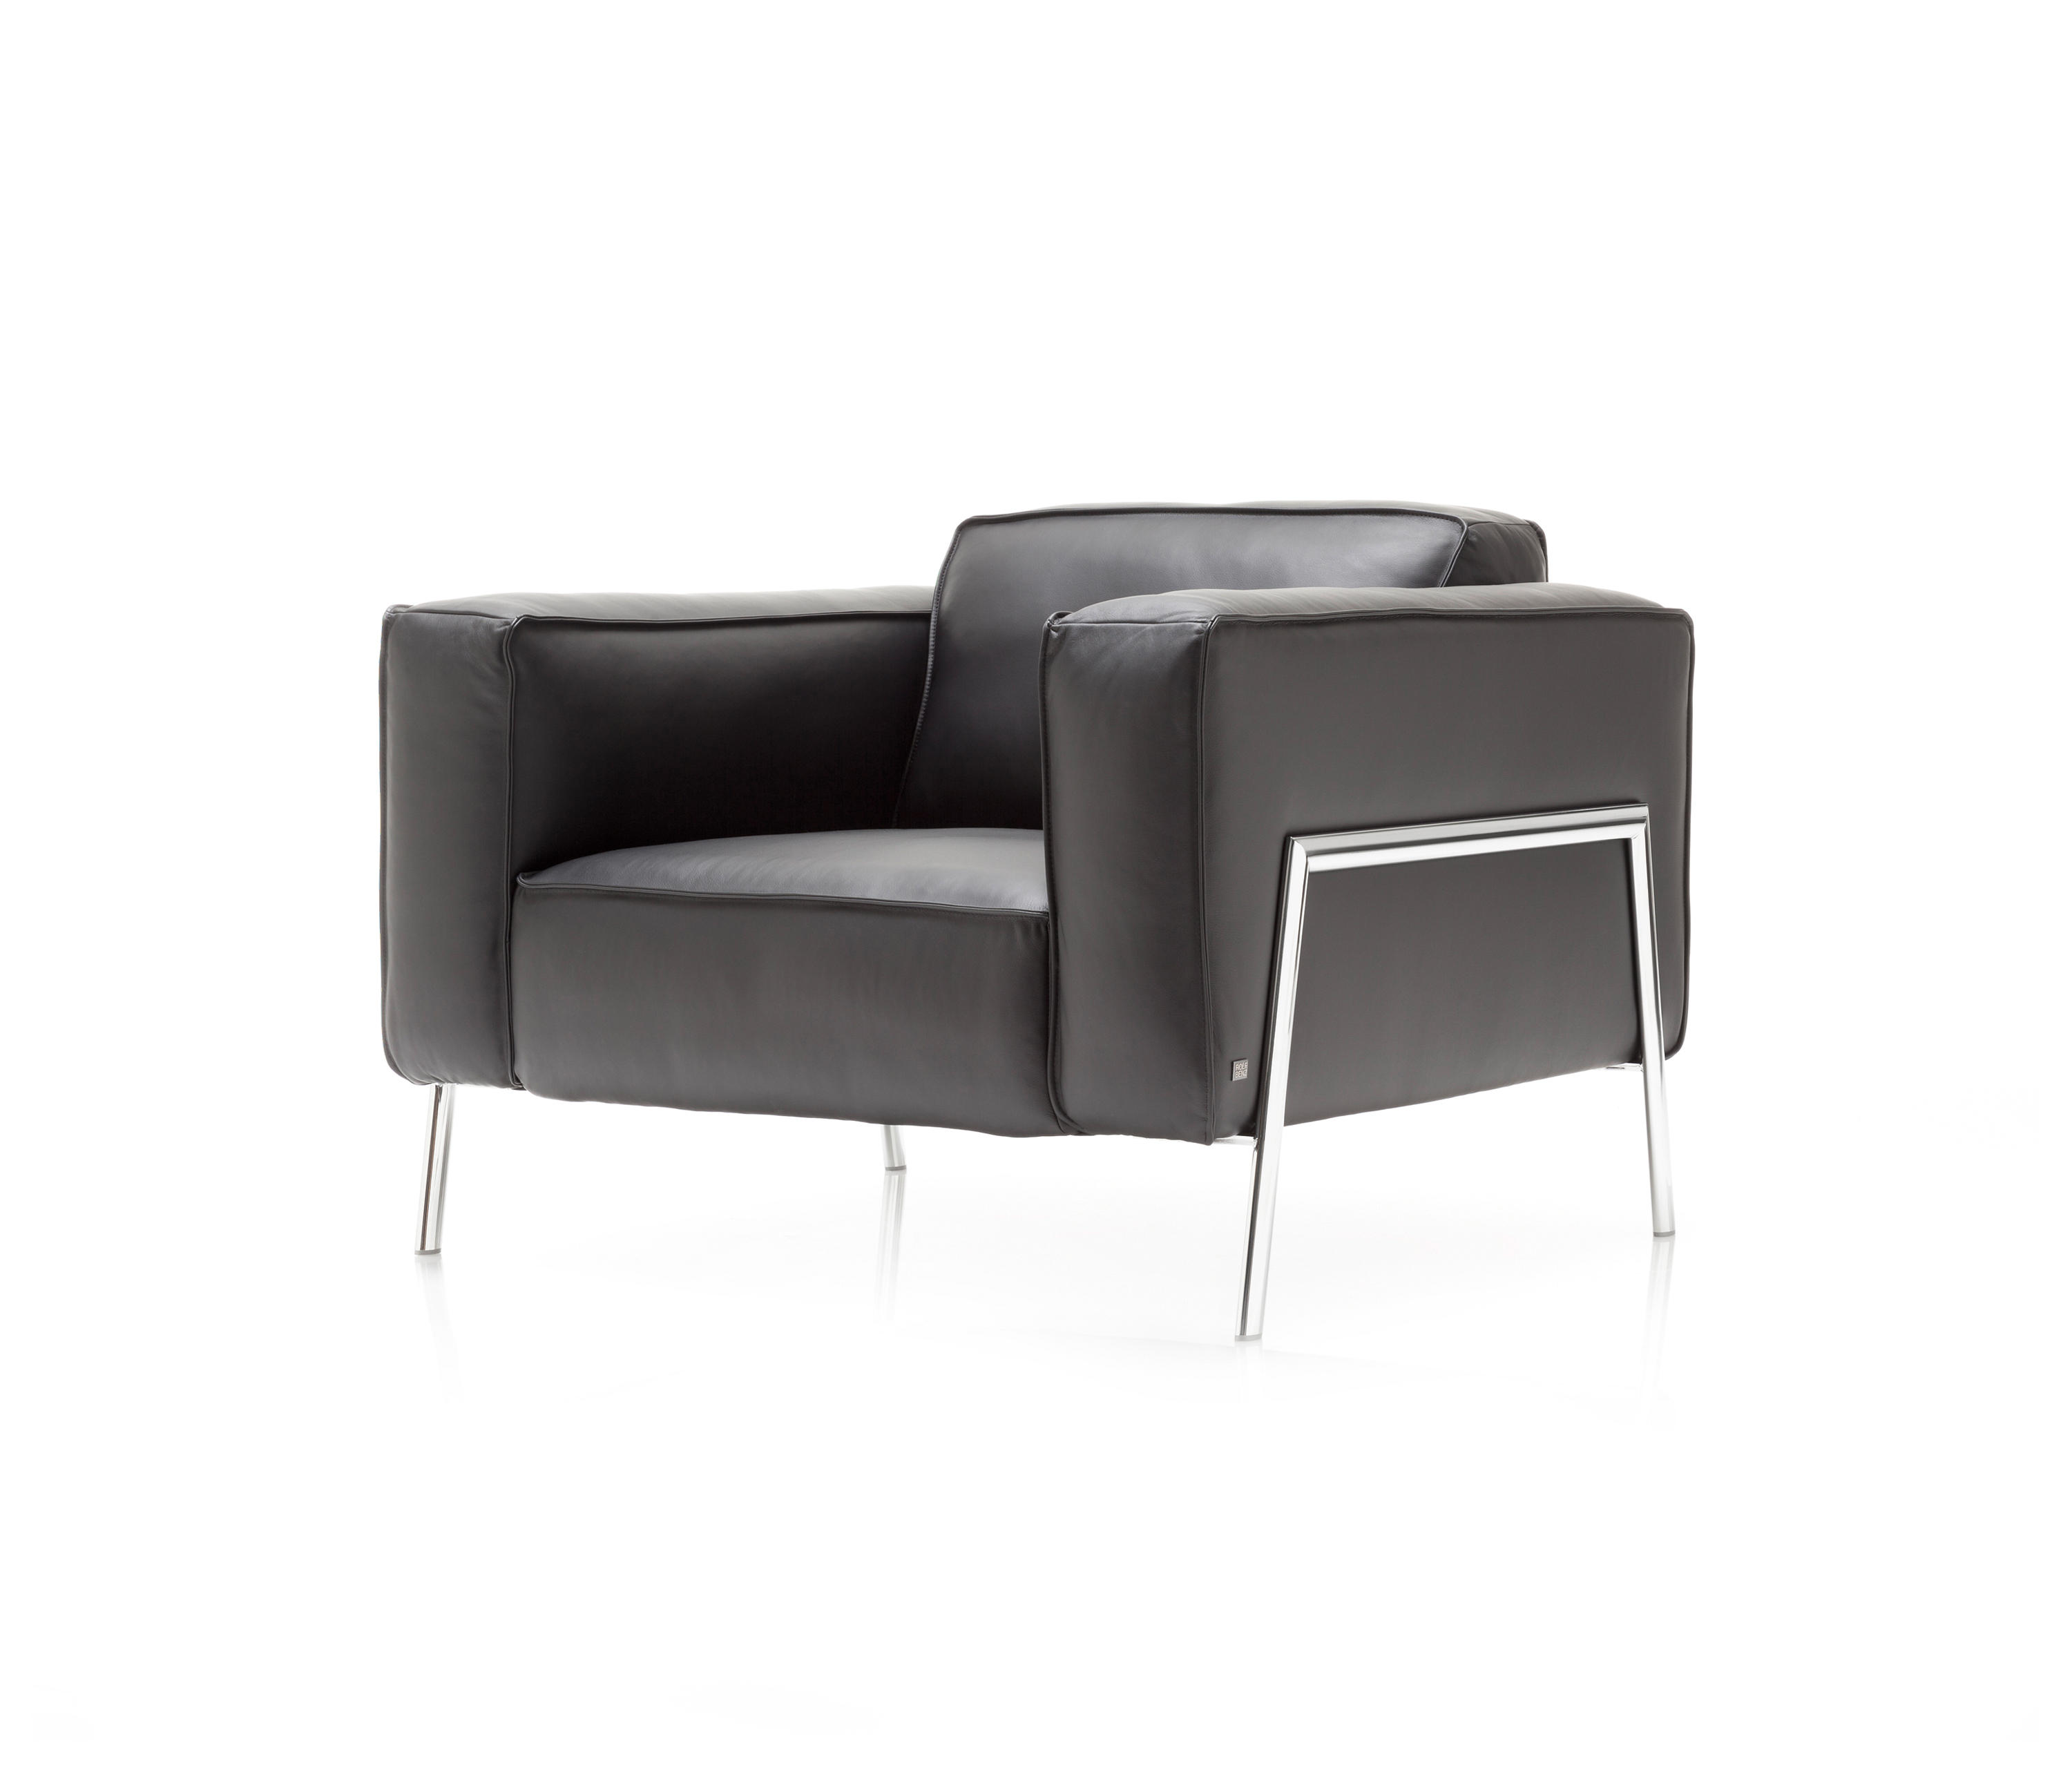 Rolf benz bacio loungesessel von rolf benz architonic for Rolf benz katalog